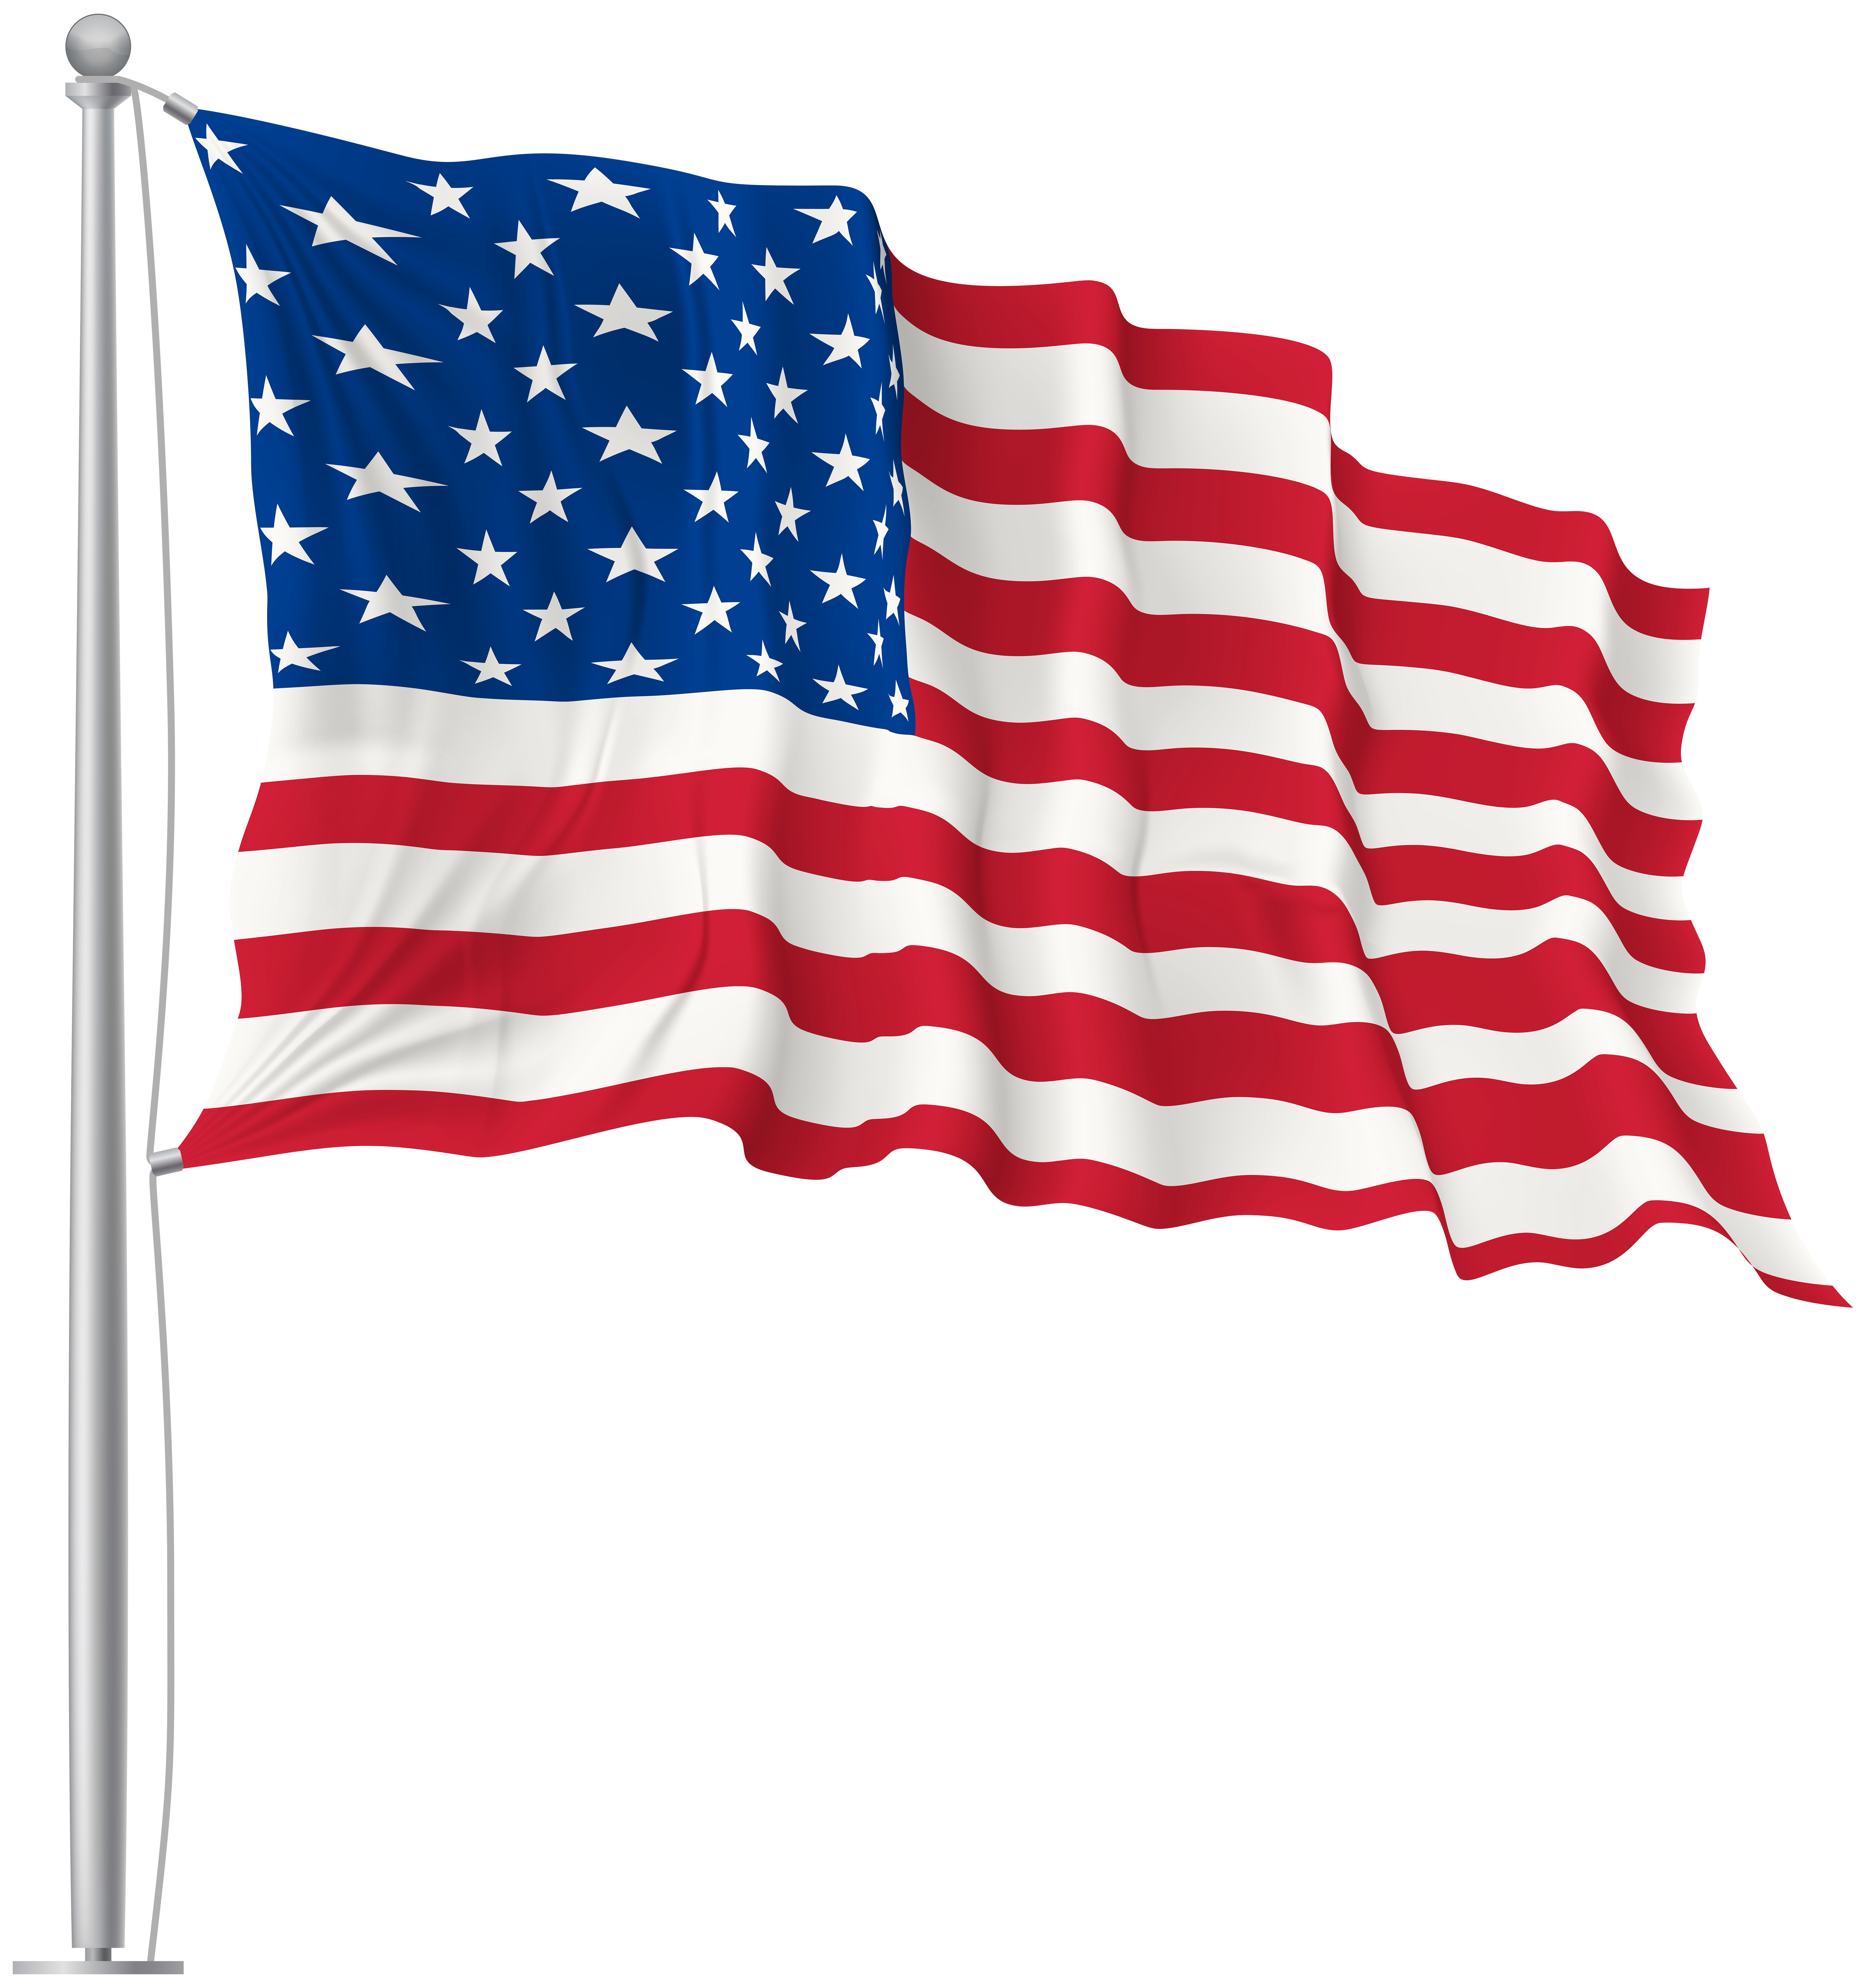 Usa waving image gallery. American flag vector png